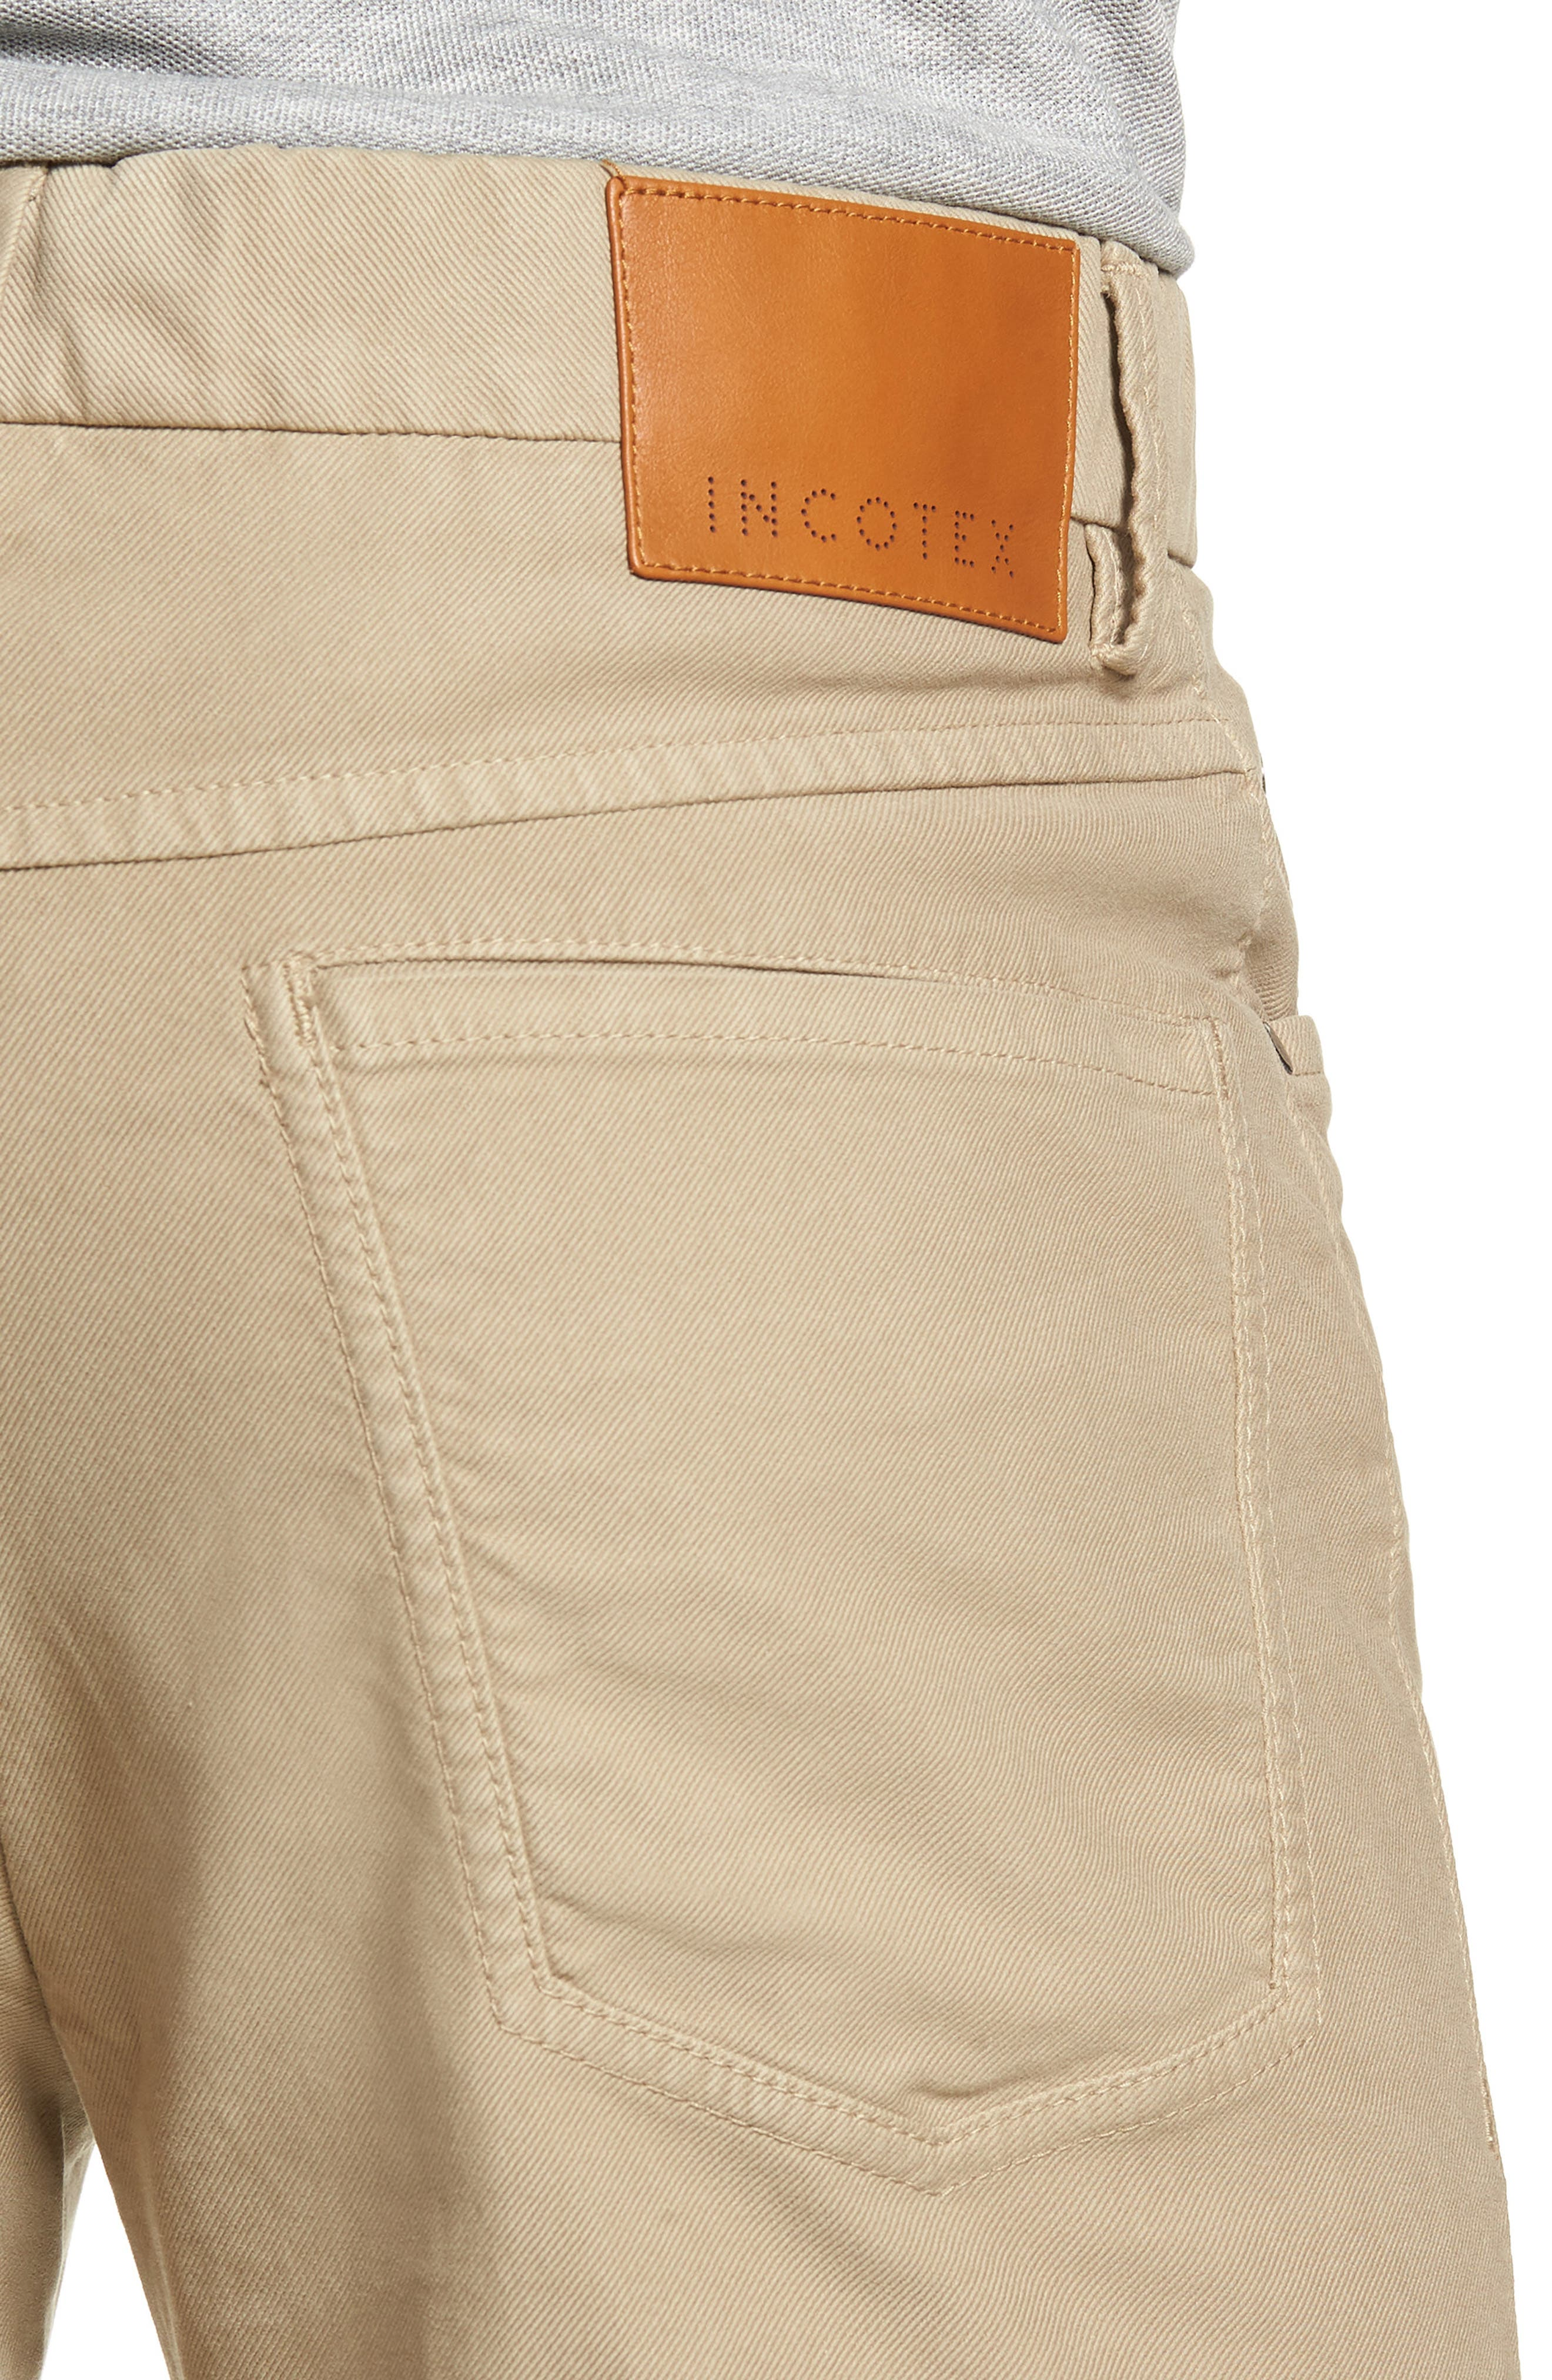 Five-Pocket Solid Stretch Cotton Trousers,                             Alternate thumbnail 4, color,                             STONE